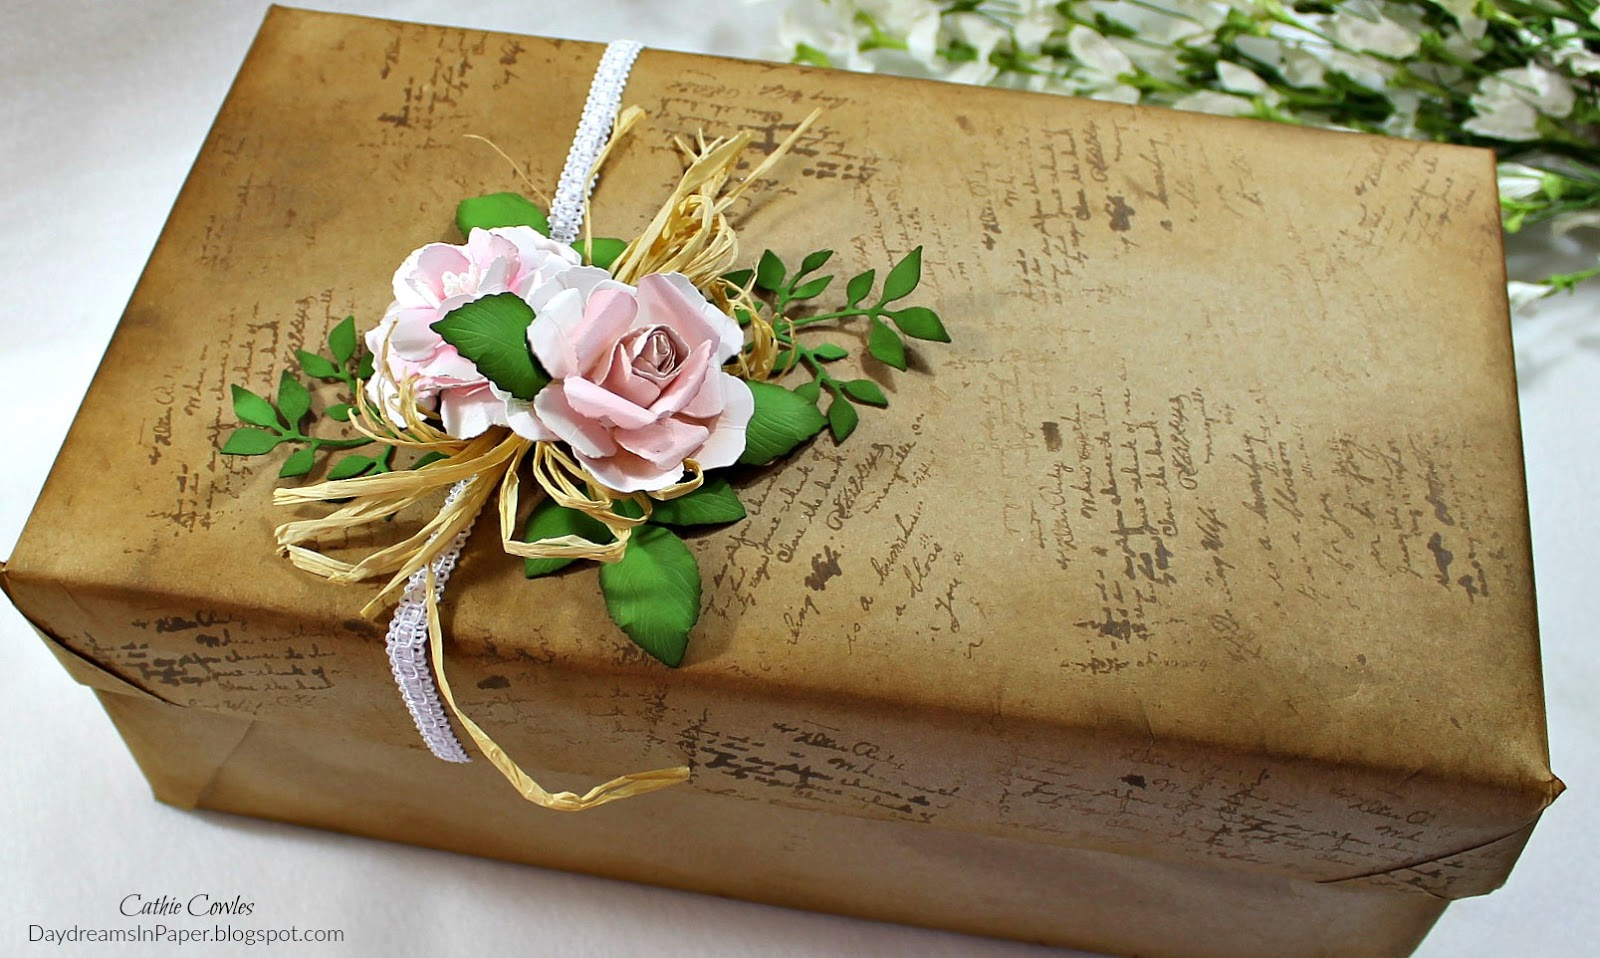 Daydreams in paper transforming an old shoe box into a beautiful how i transformed a shoe box into a beautiful gift box and that you use some of these ideas to create a beautiful box of your own have a great weekend negle Images